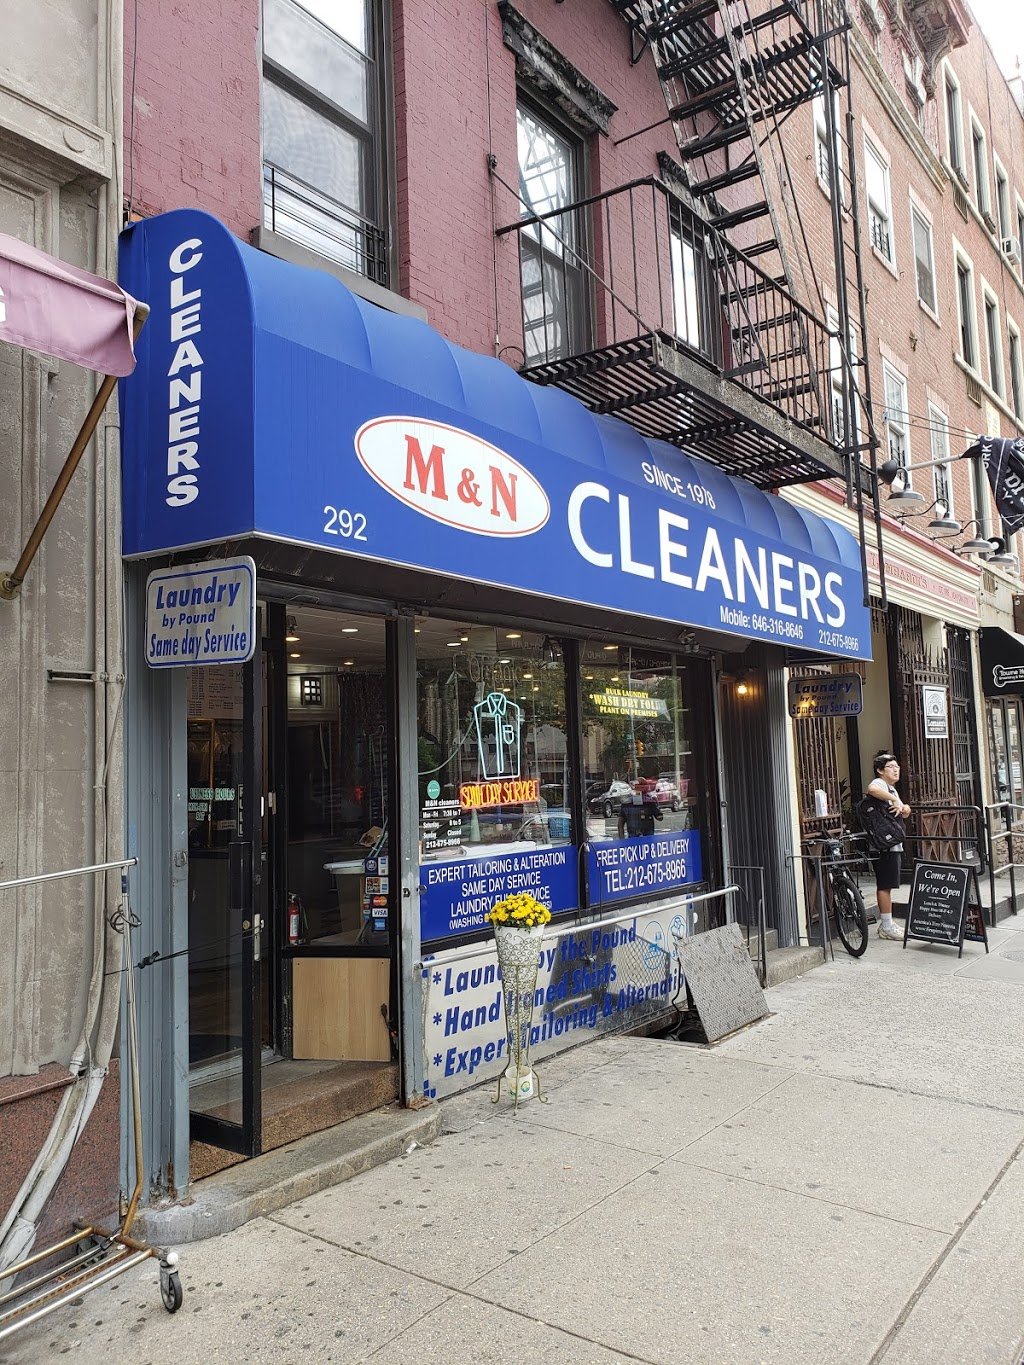 M & N Cleaners | laundry | 292 8th Ave, New York, NY 10001, USA | 2126758966 OR +1 212-675-8966